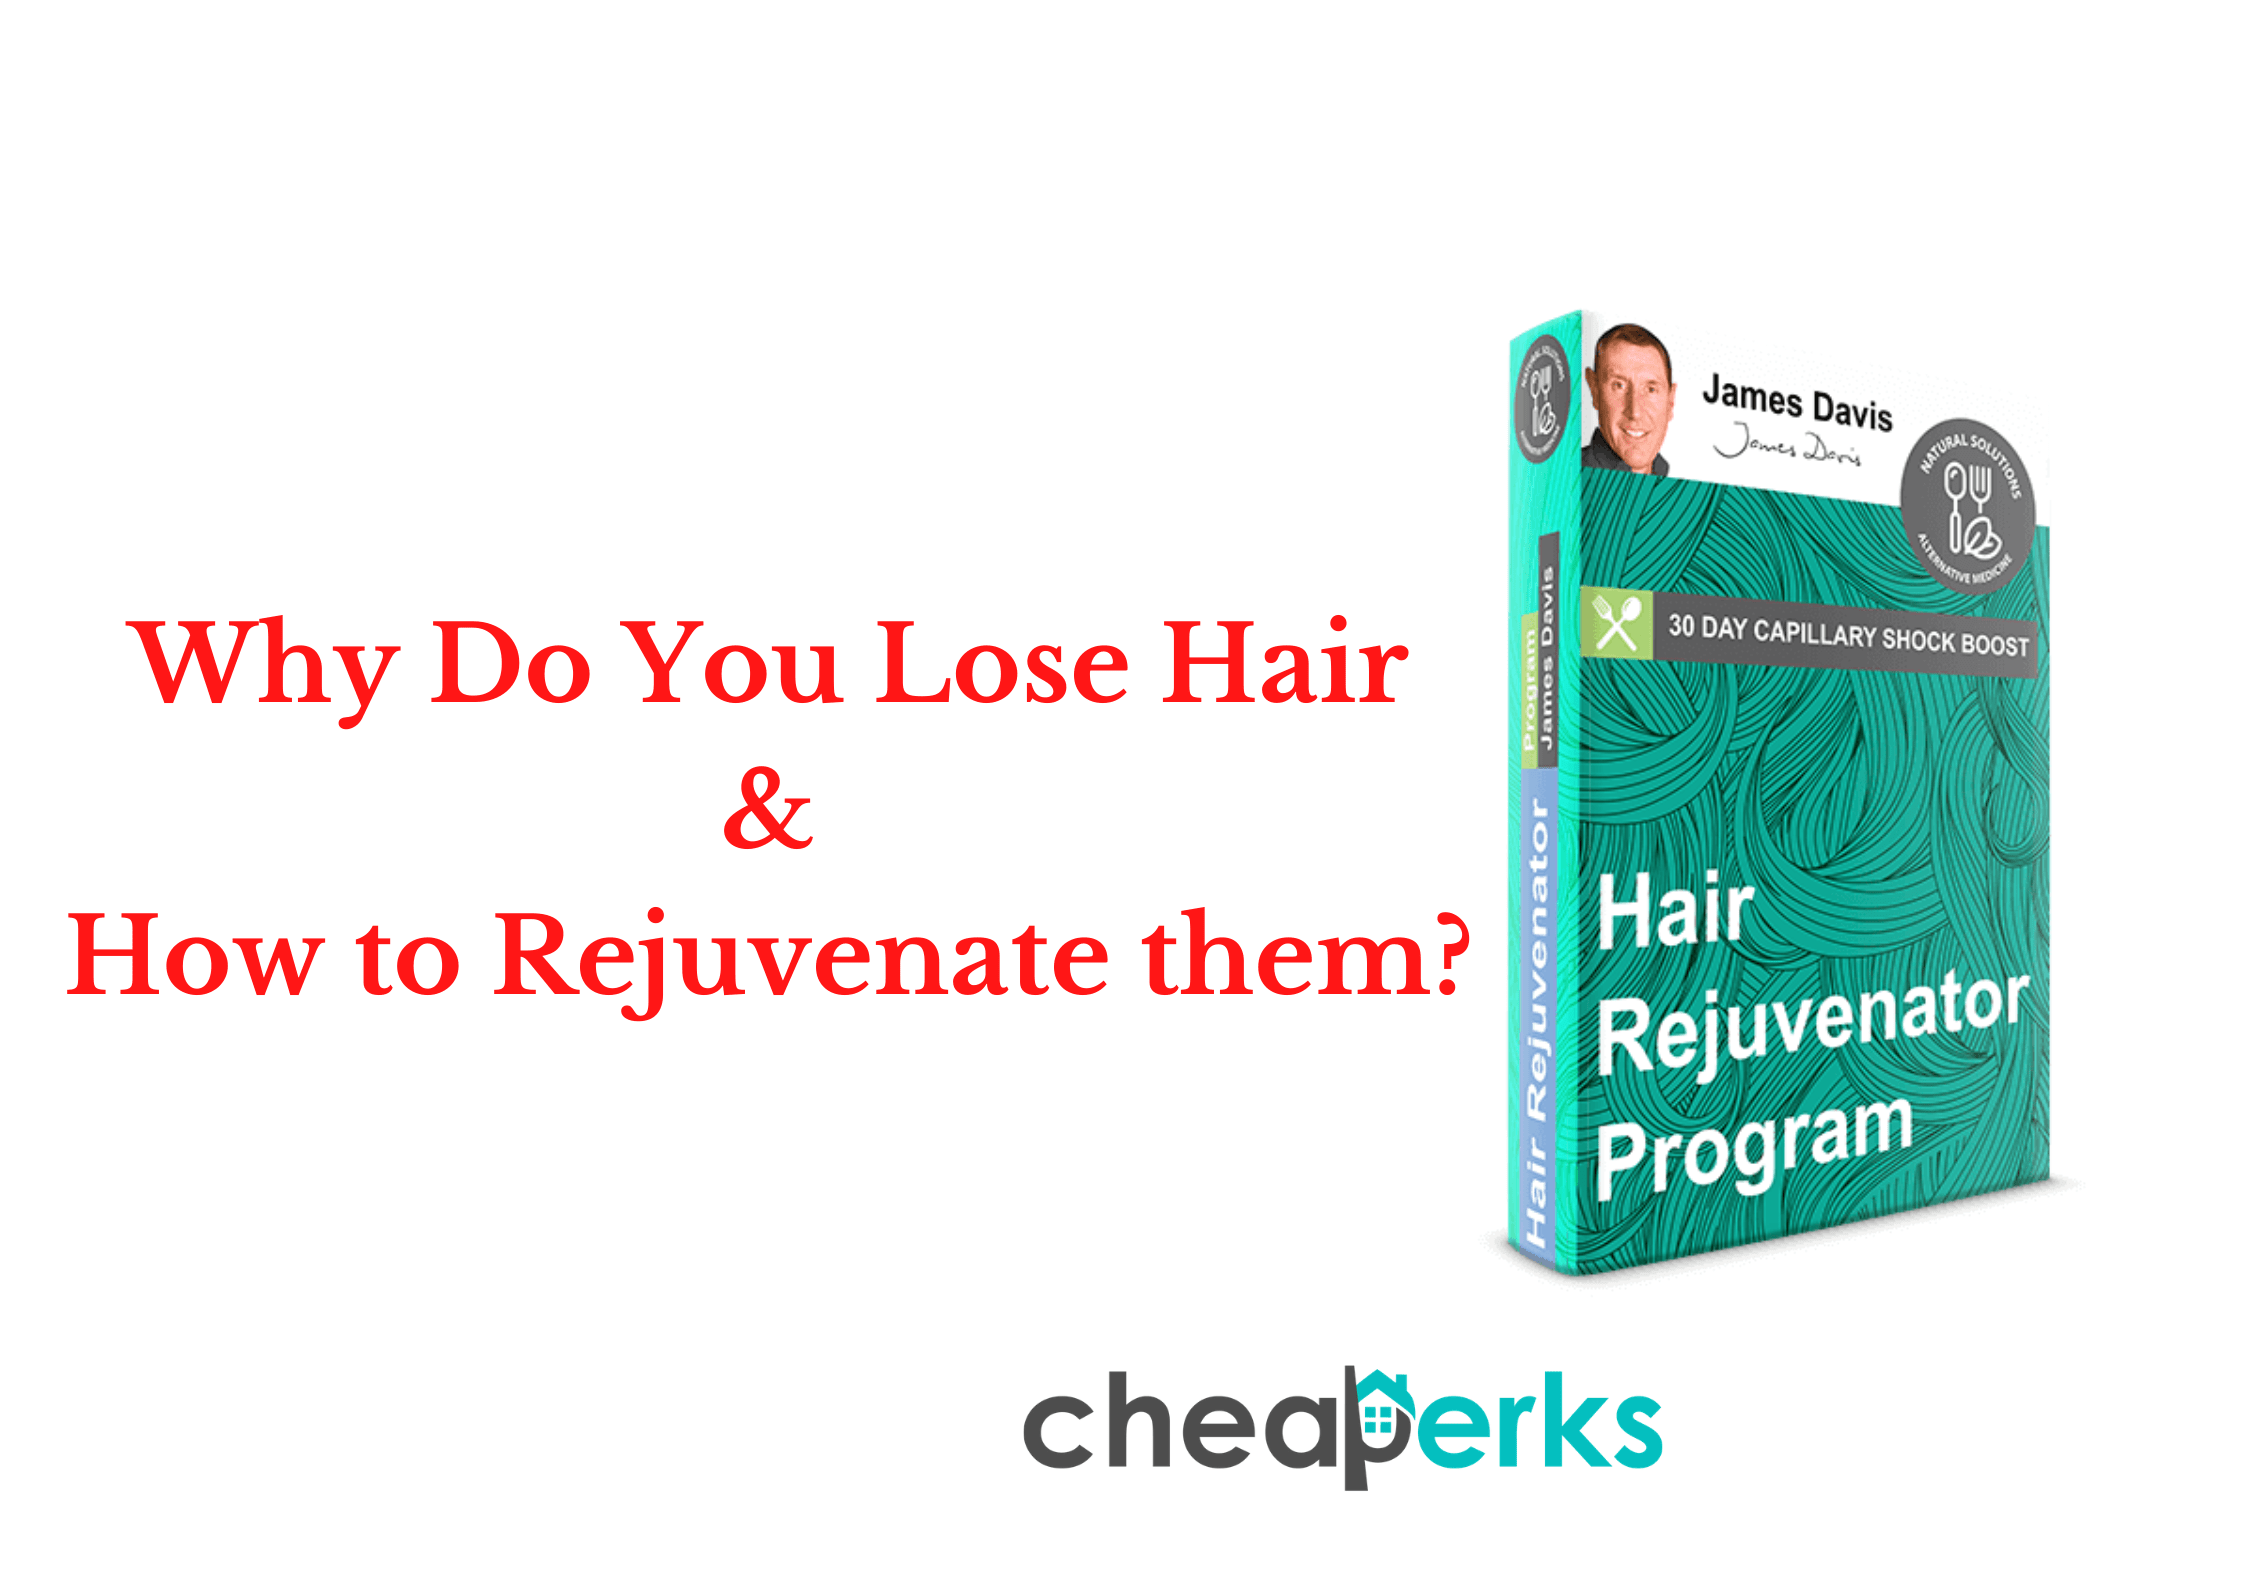 Hair Rejuvenator Program Review